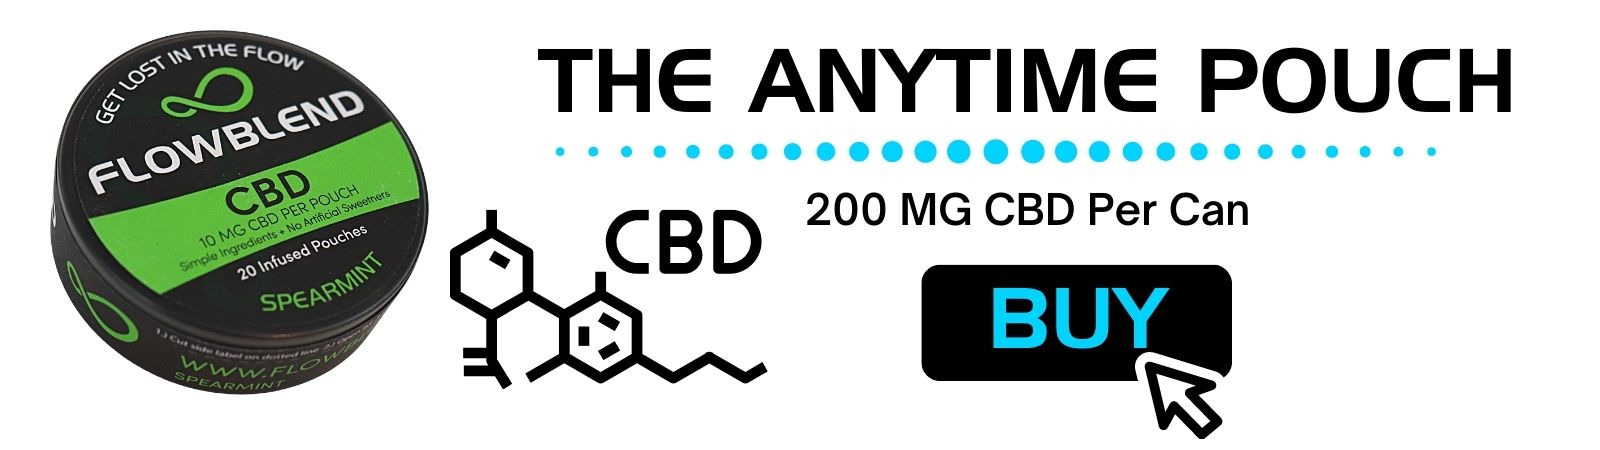 cbd pouches, natural pouches, tobacco alternative, quit nicotine, infused pouches